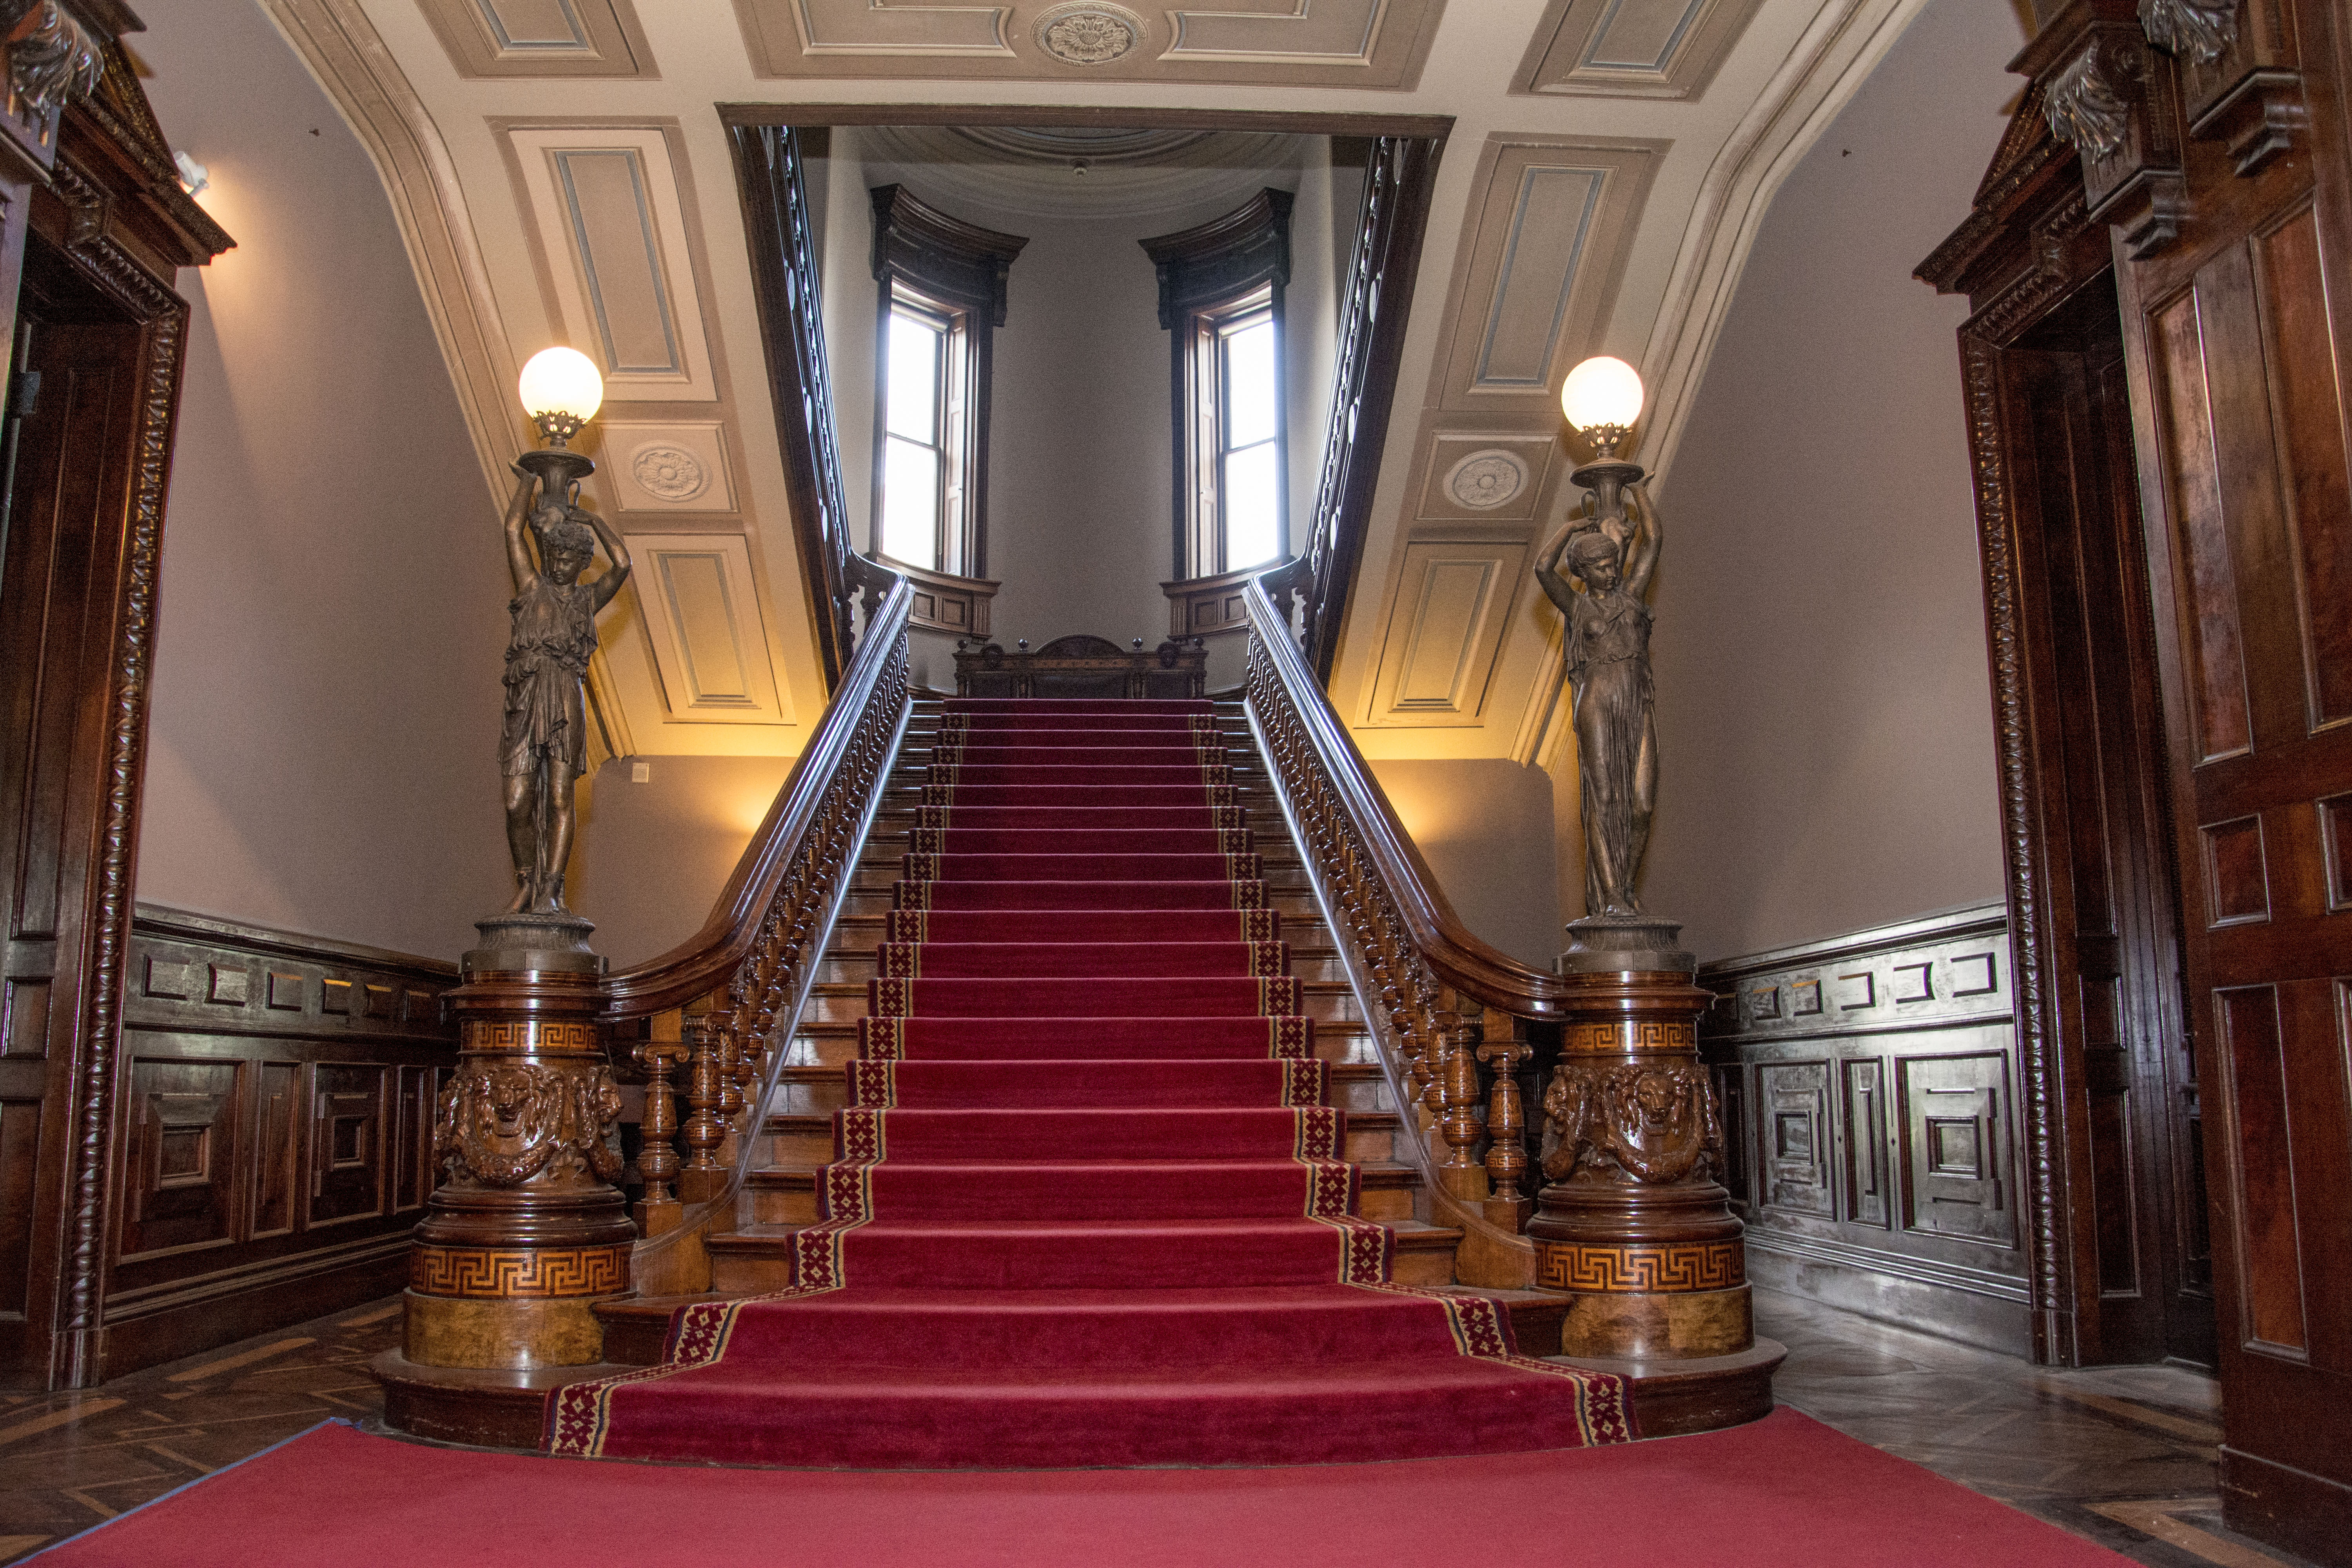 The modern Grand Staircase